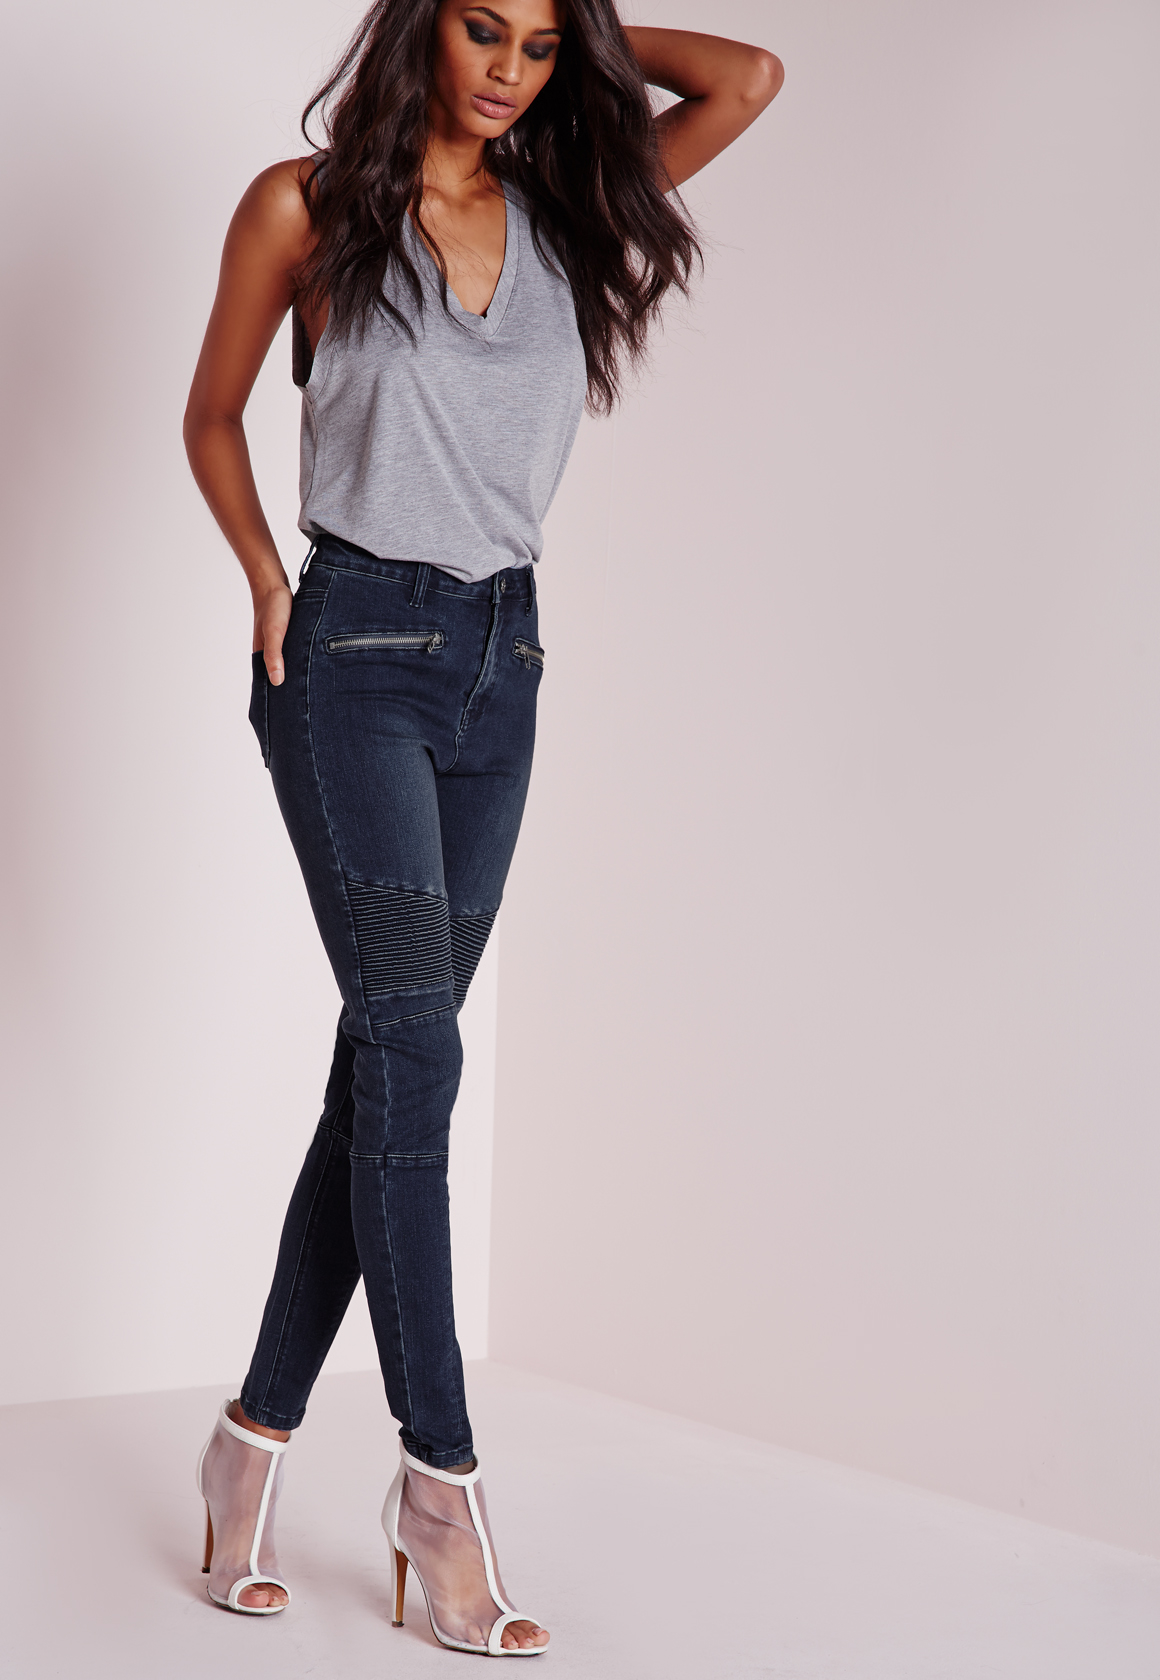 Jeans Tall Highwaisted Sinner Skinny Blue Lyst In Missguided Biker ZwxqWB